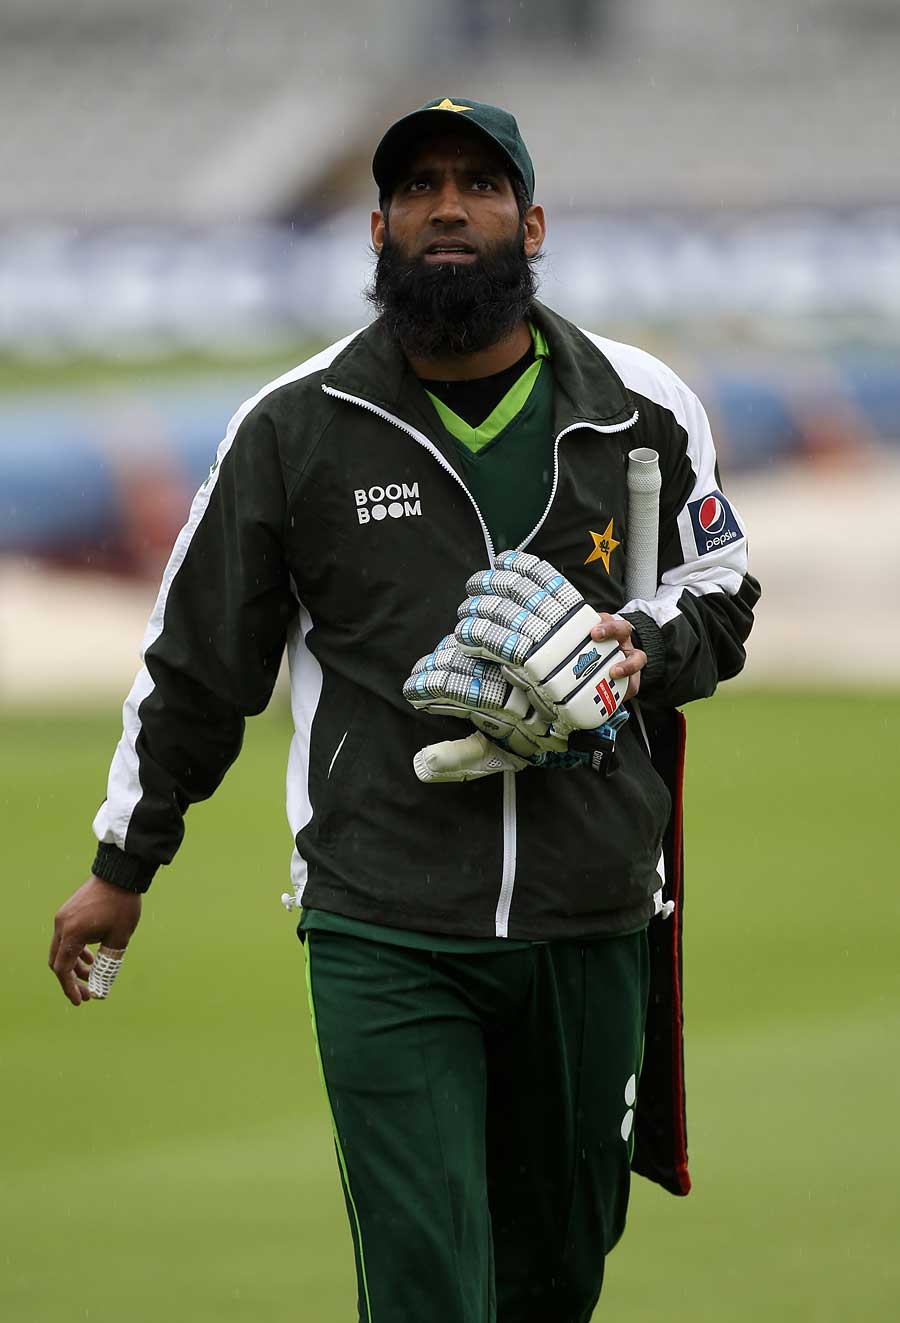 Mohammad Yousuf, Pakistan, 2019 World Cup